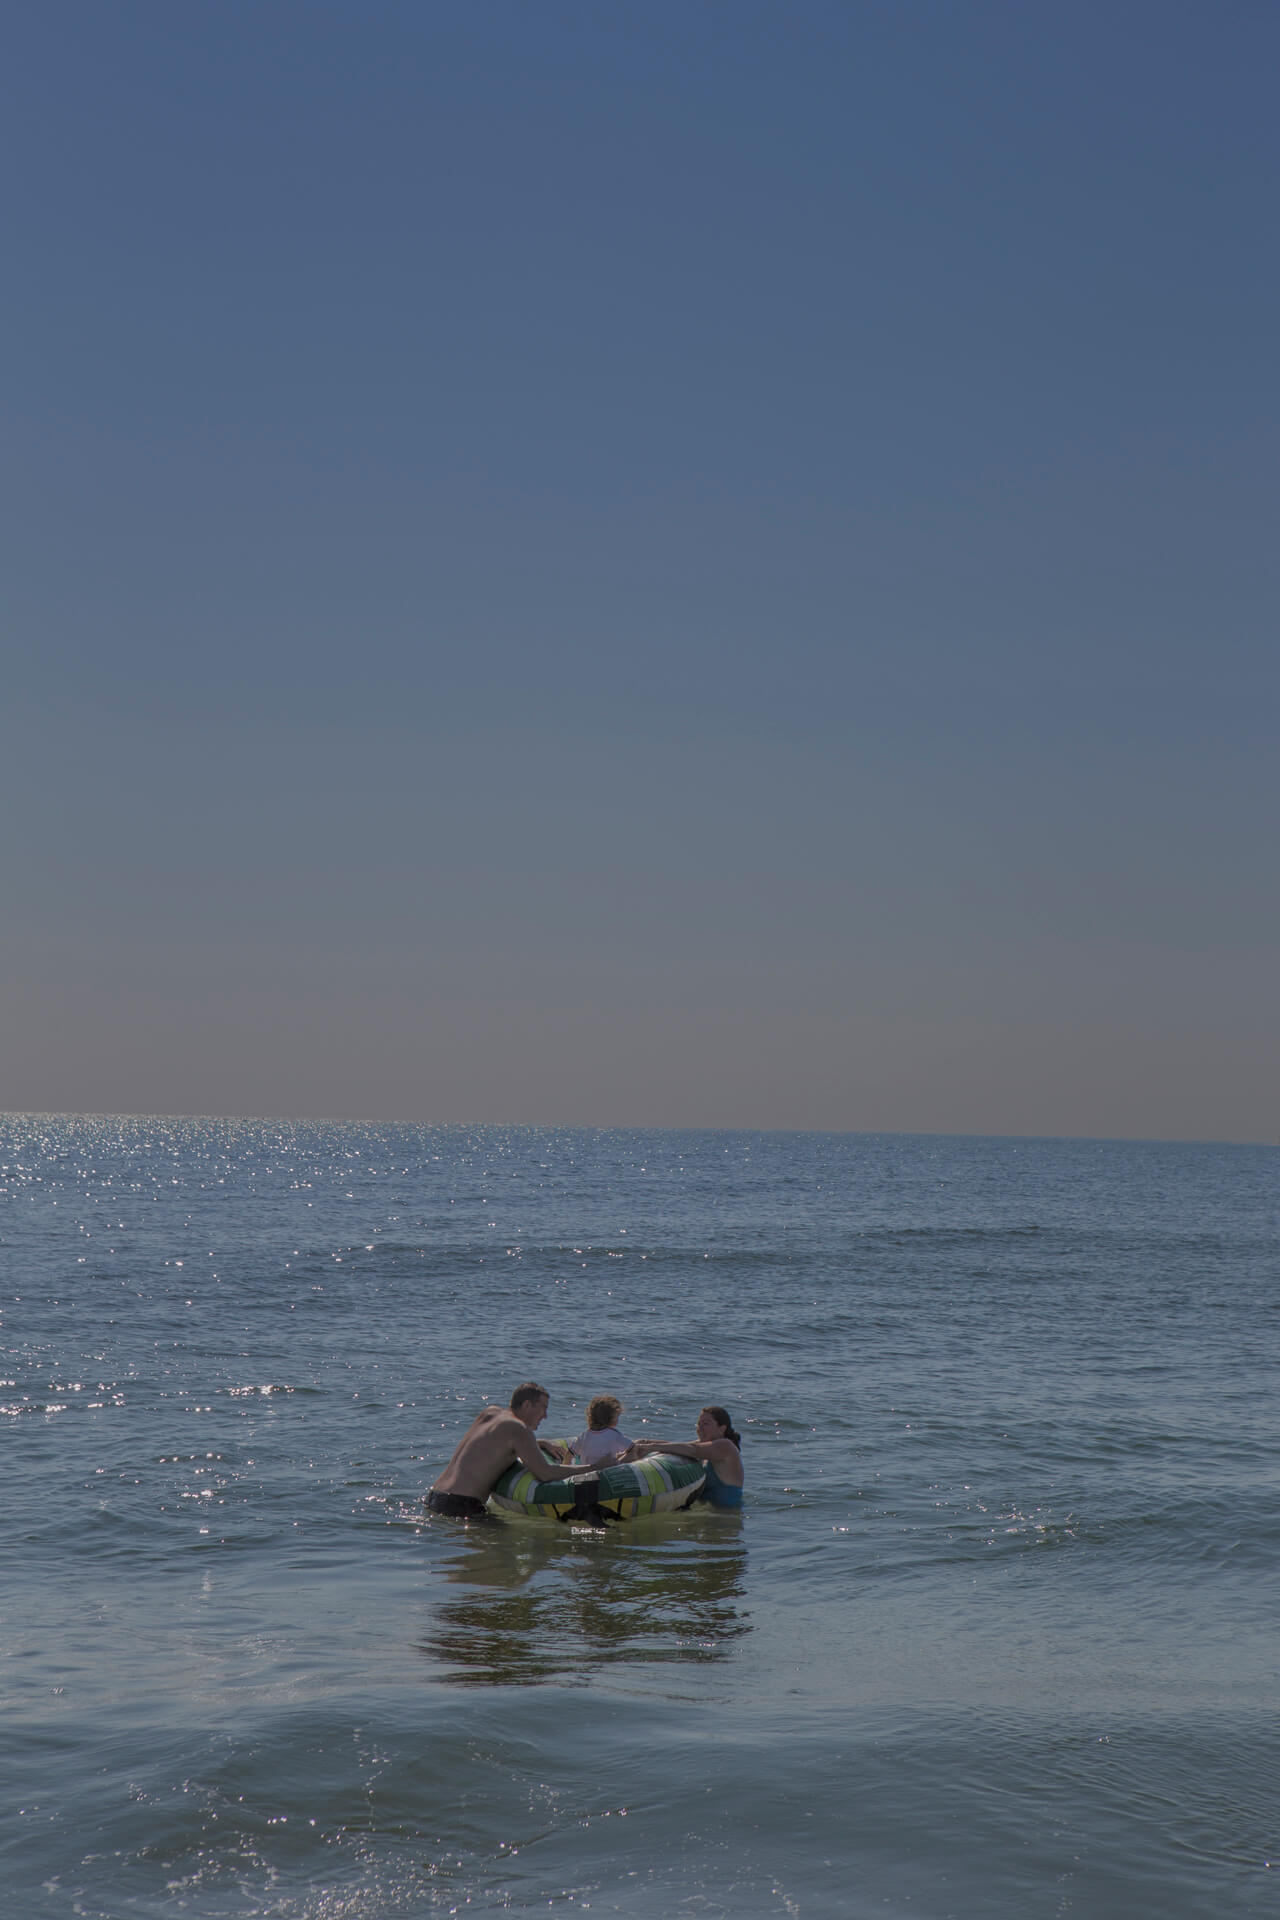 Matthew Swarts, Erik, Liam, and Kim, Long Beach Island, New Jersey, 2012.